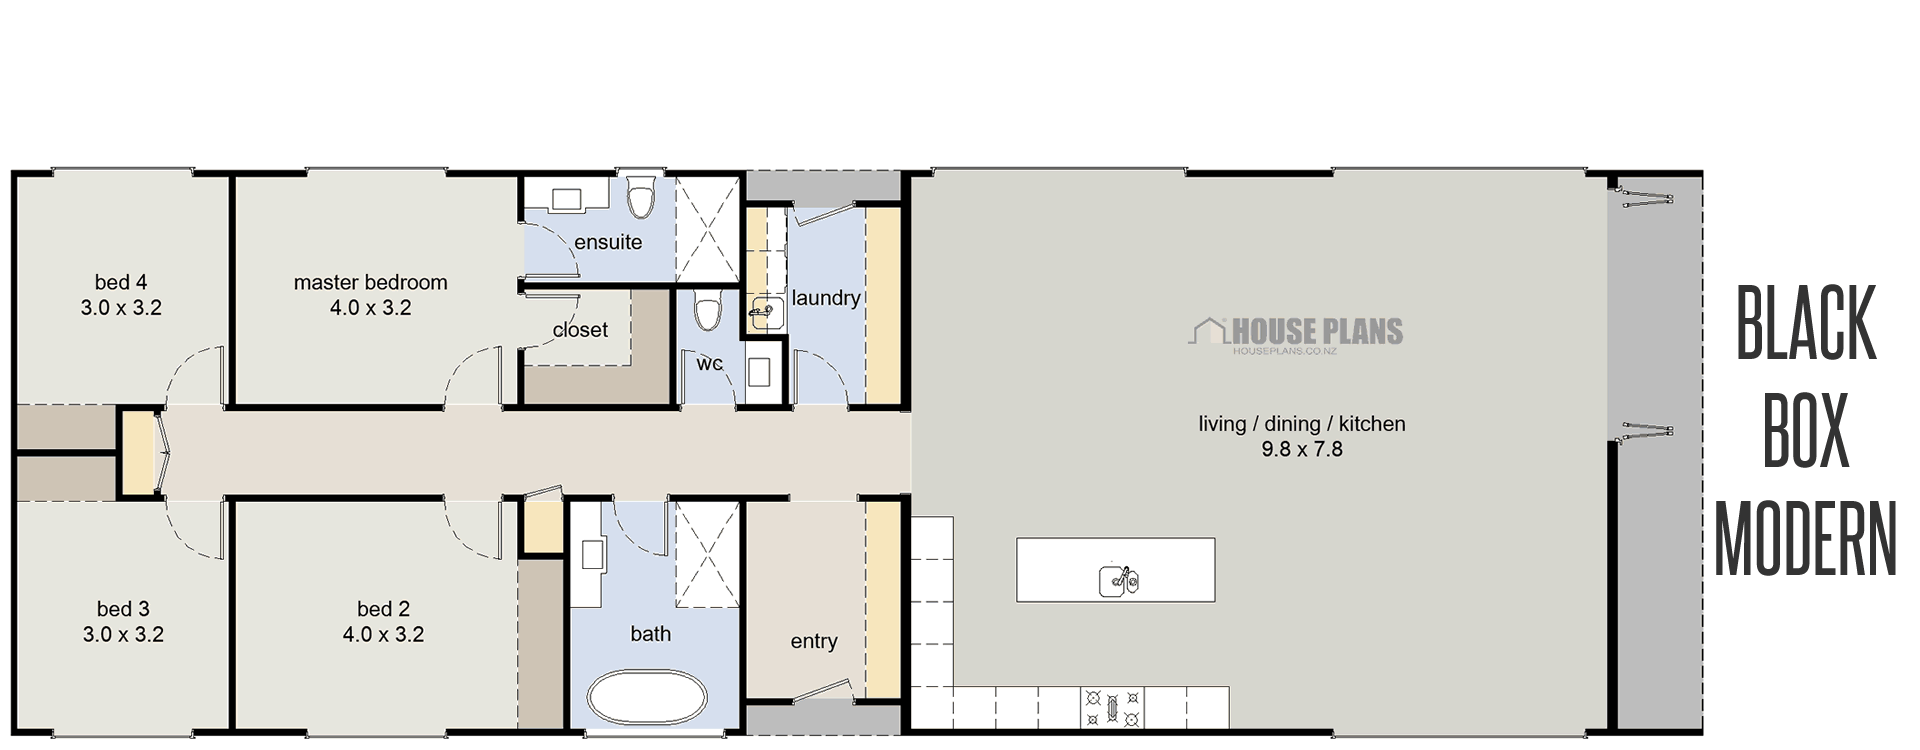 House Plans Queensland in 2020 House plans, Narrow house